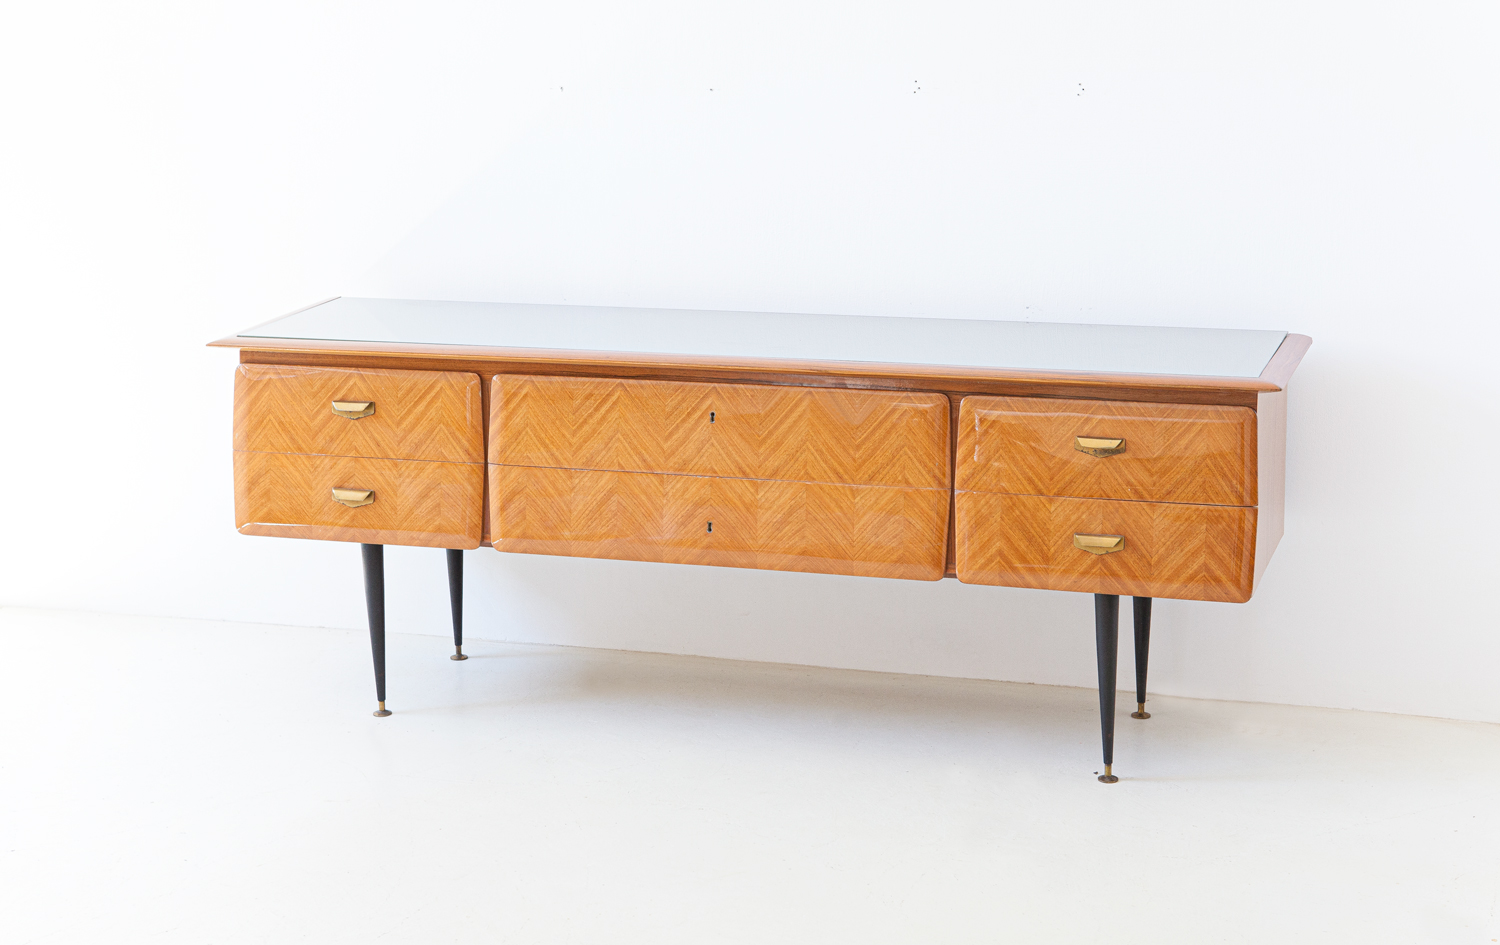 1950s-itaian-blond-mahogany-chest-of-drawers-1-st124